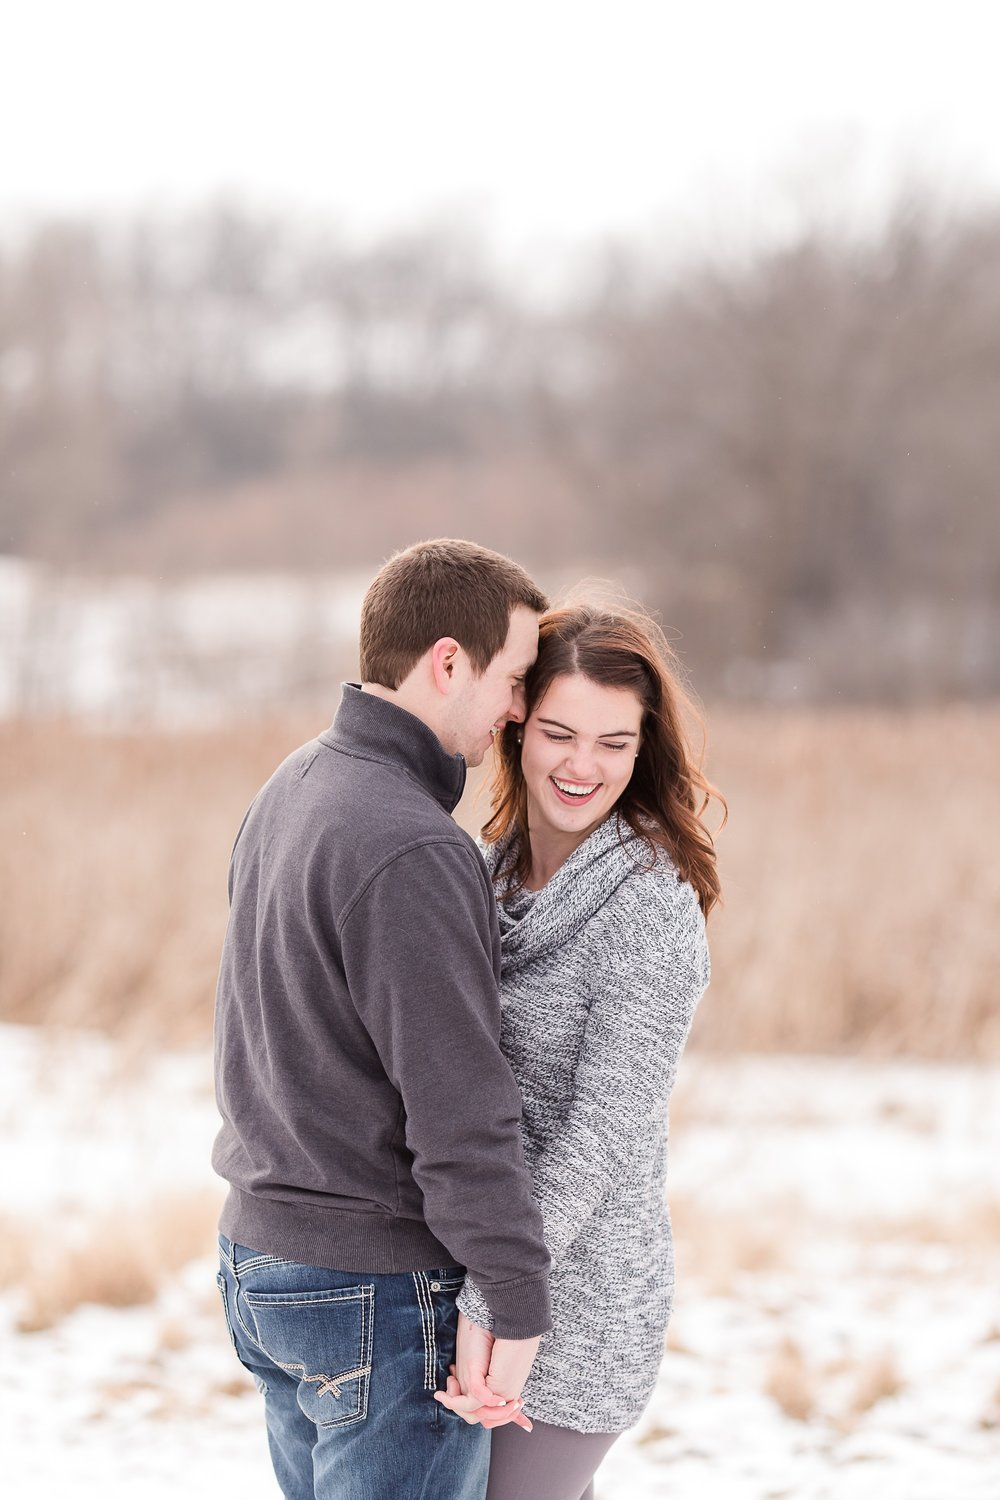 Wintertime, Country Styled Engagement Session with their Dogs near Audubon, MN by Amber Langerud Photography